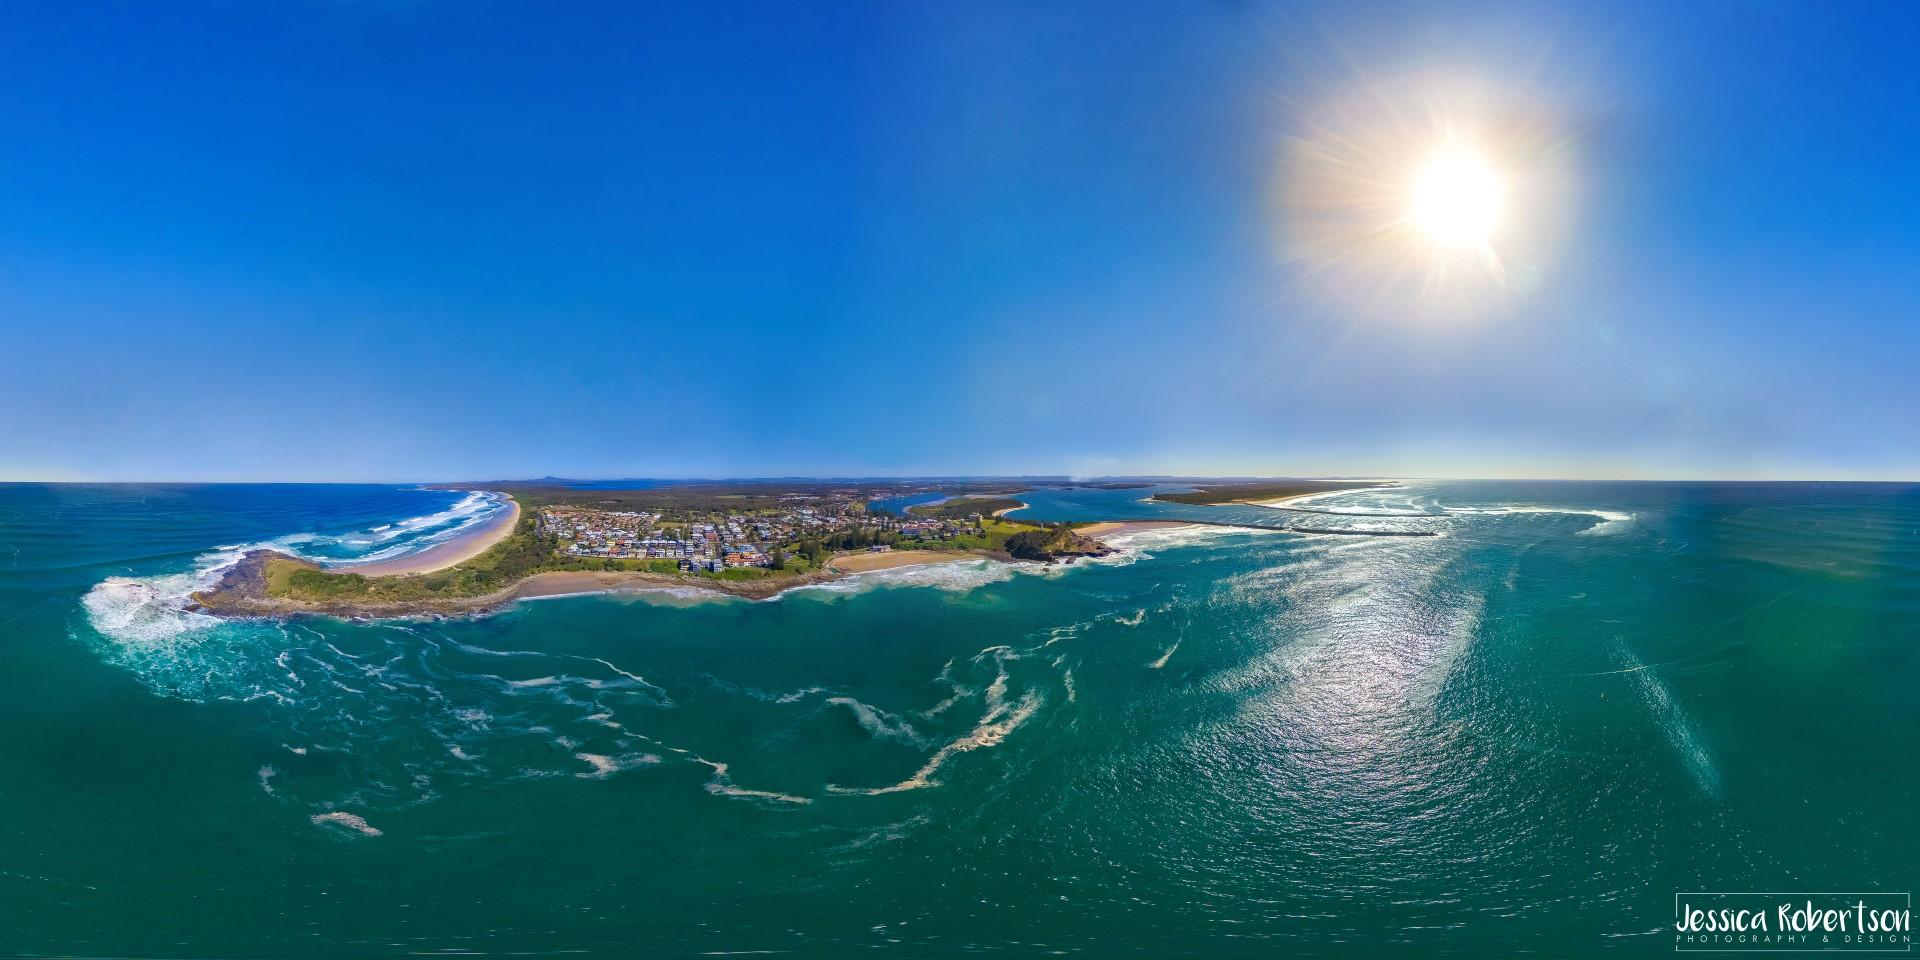 Yamba - Australia's Number One Holiday Destination